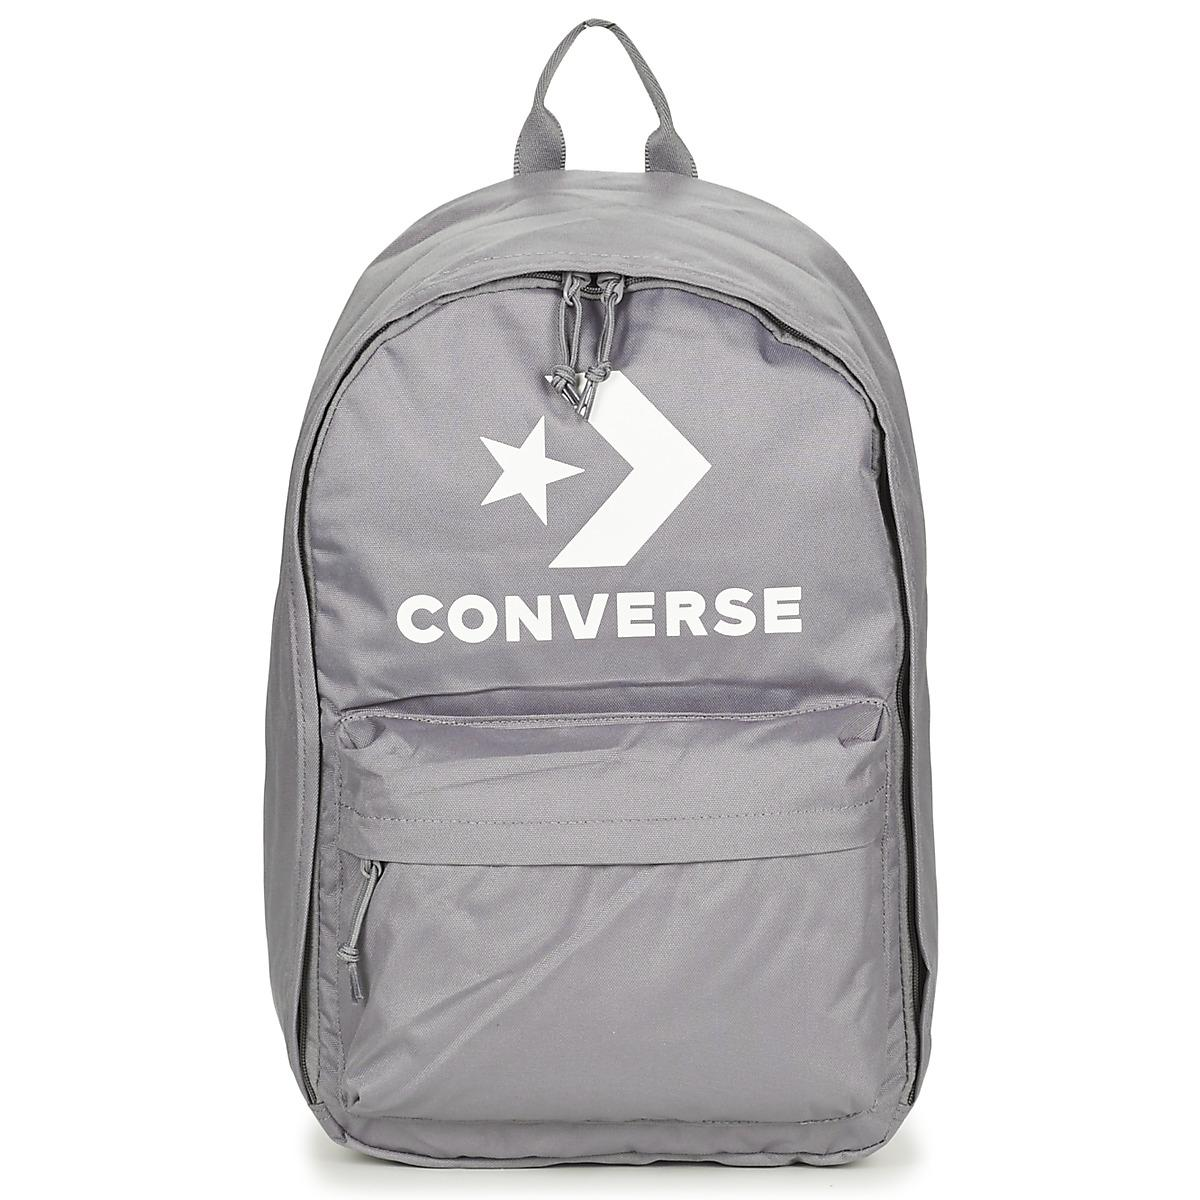 db8bbbde0268 Converse Edc 22 Backpack Backpack in Gray for Men - Lyst